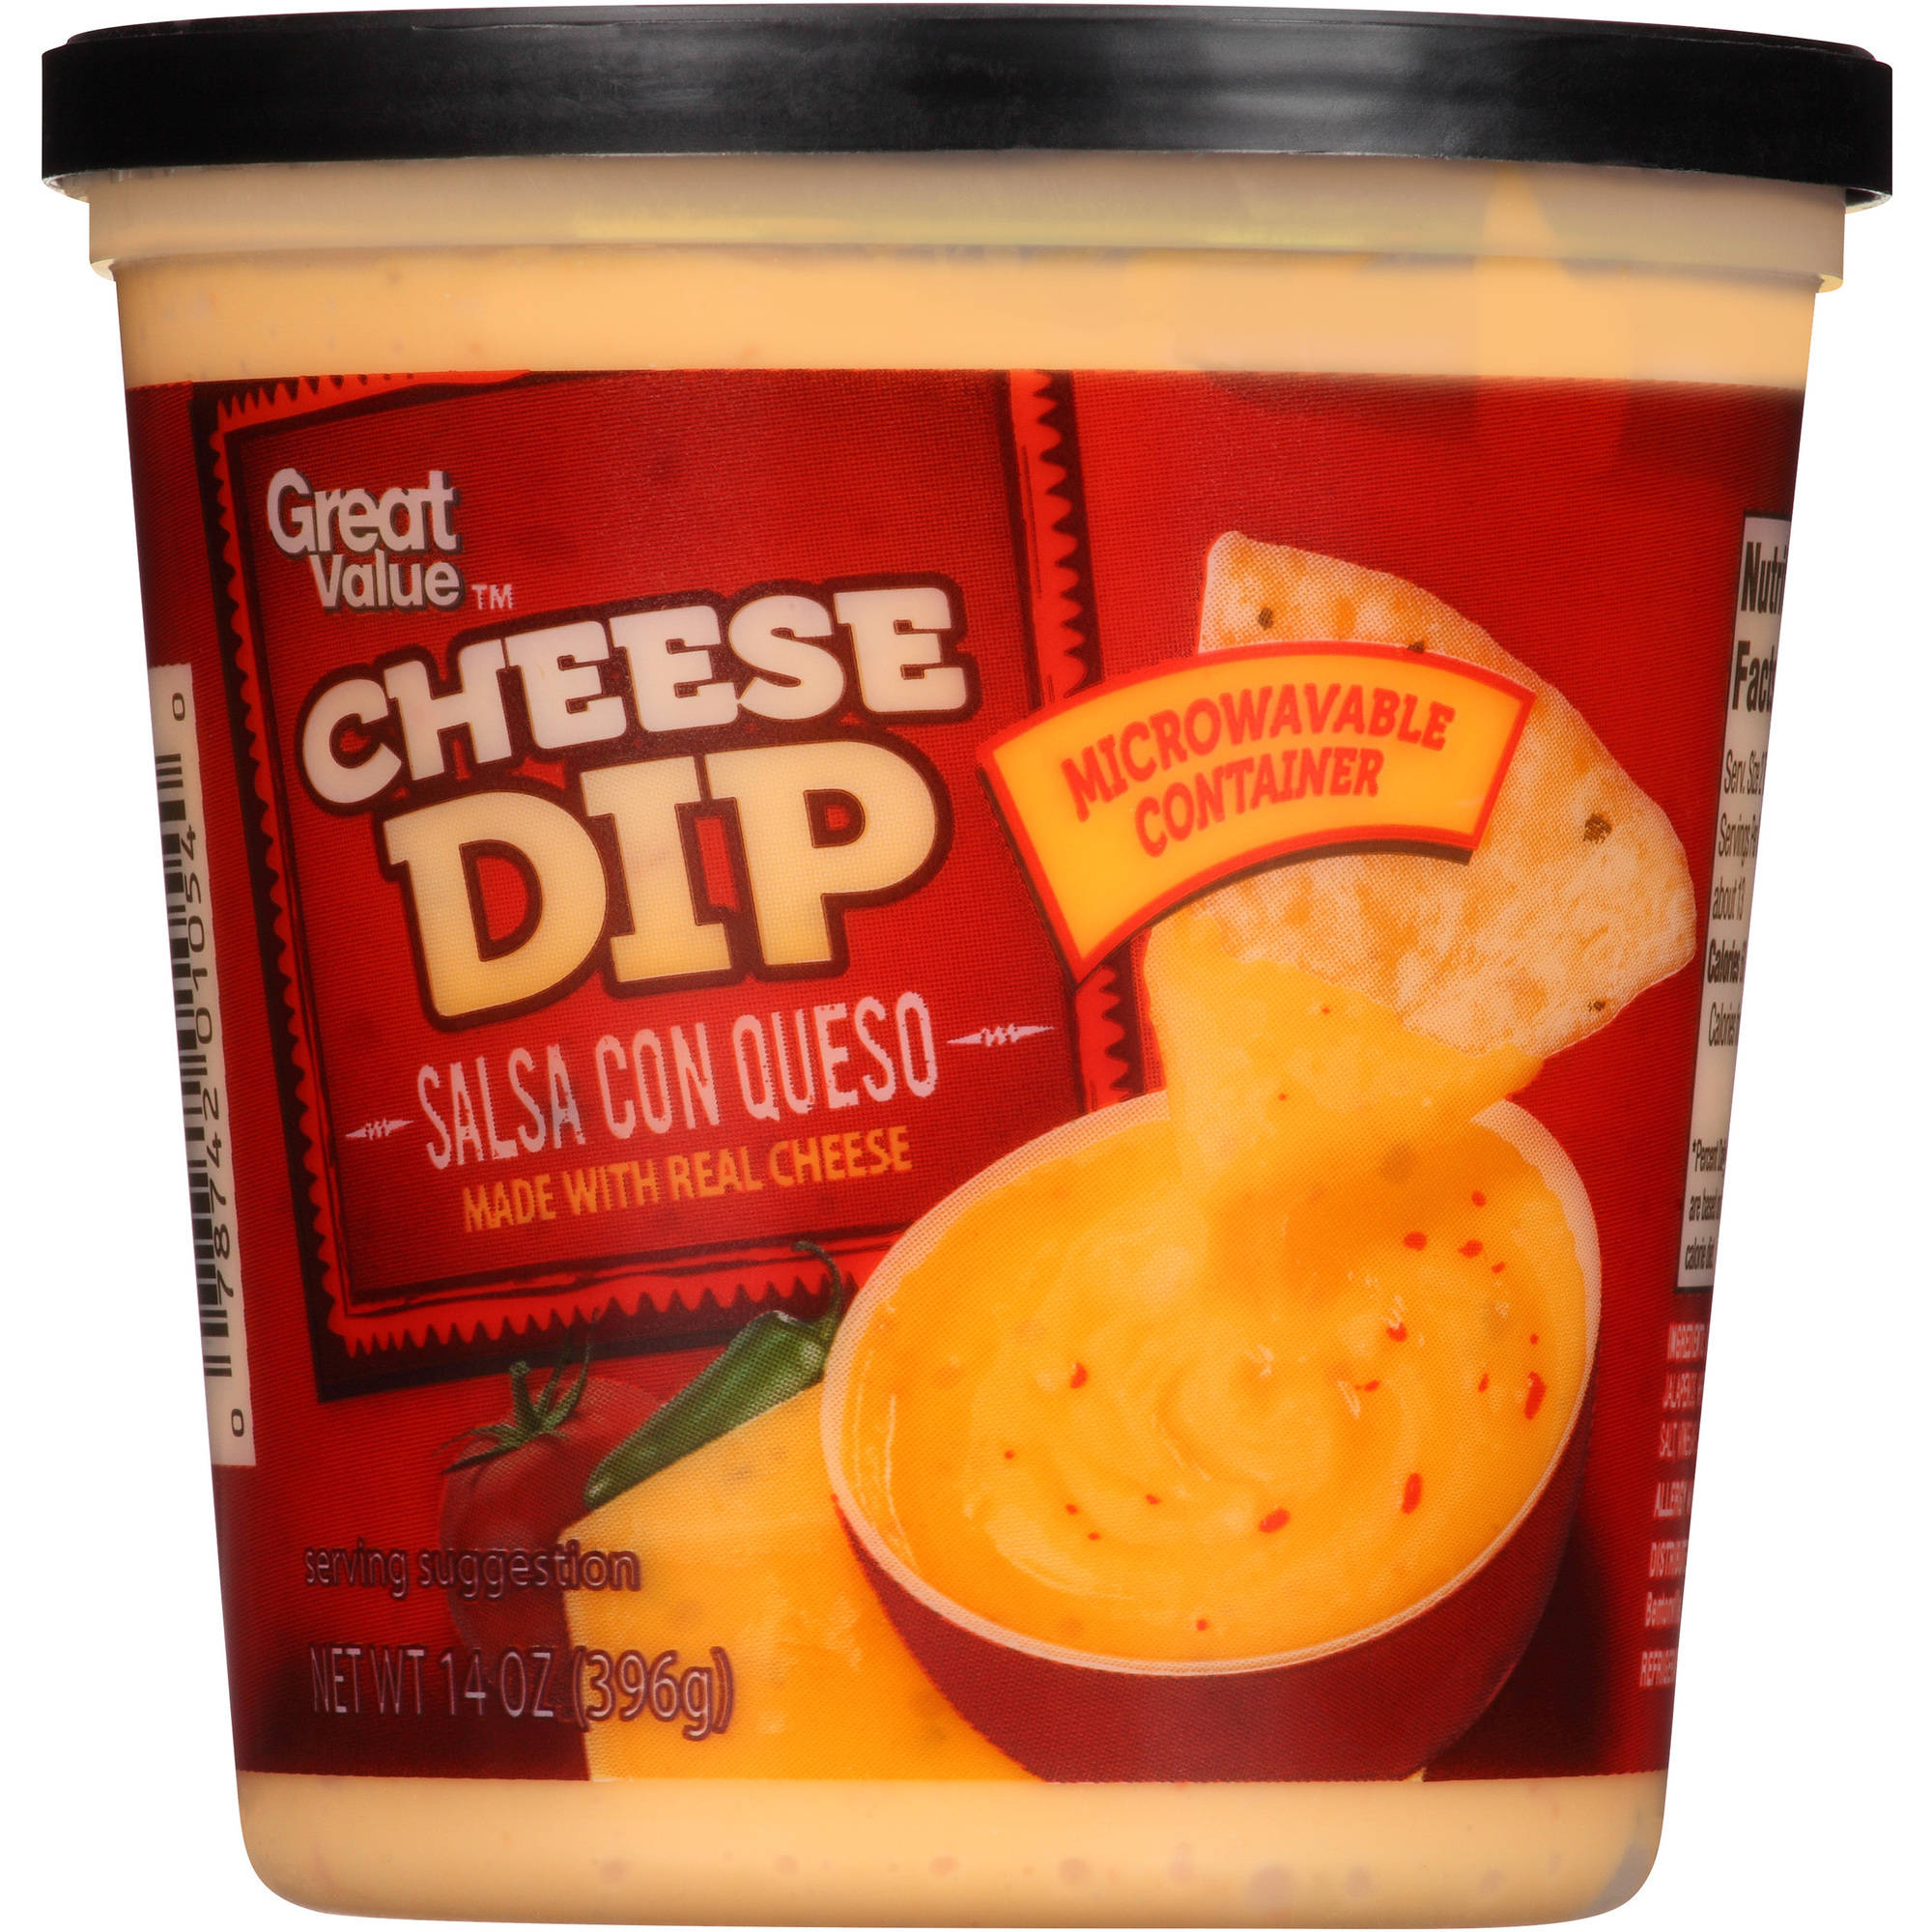 Great Value Salsa Con Queso Cheese Dip, 14 oz